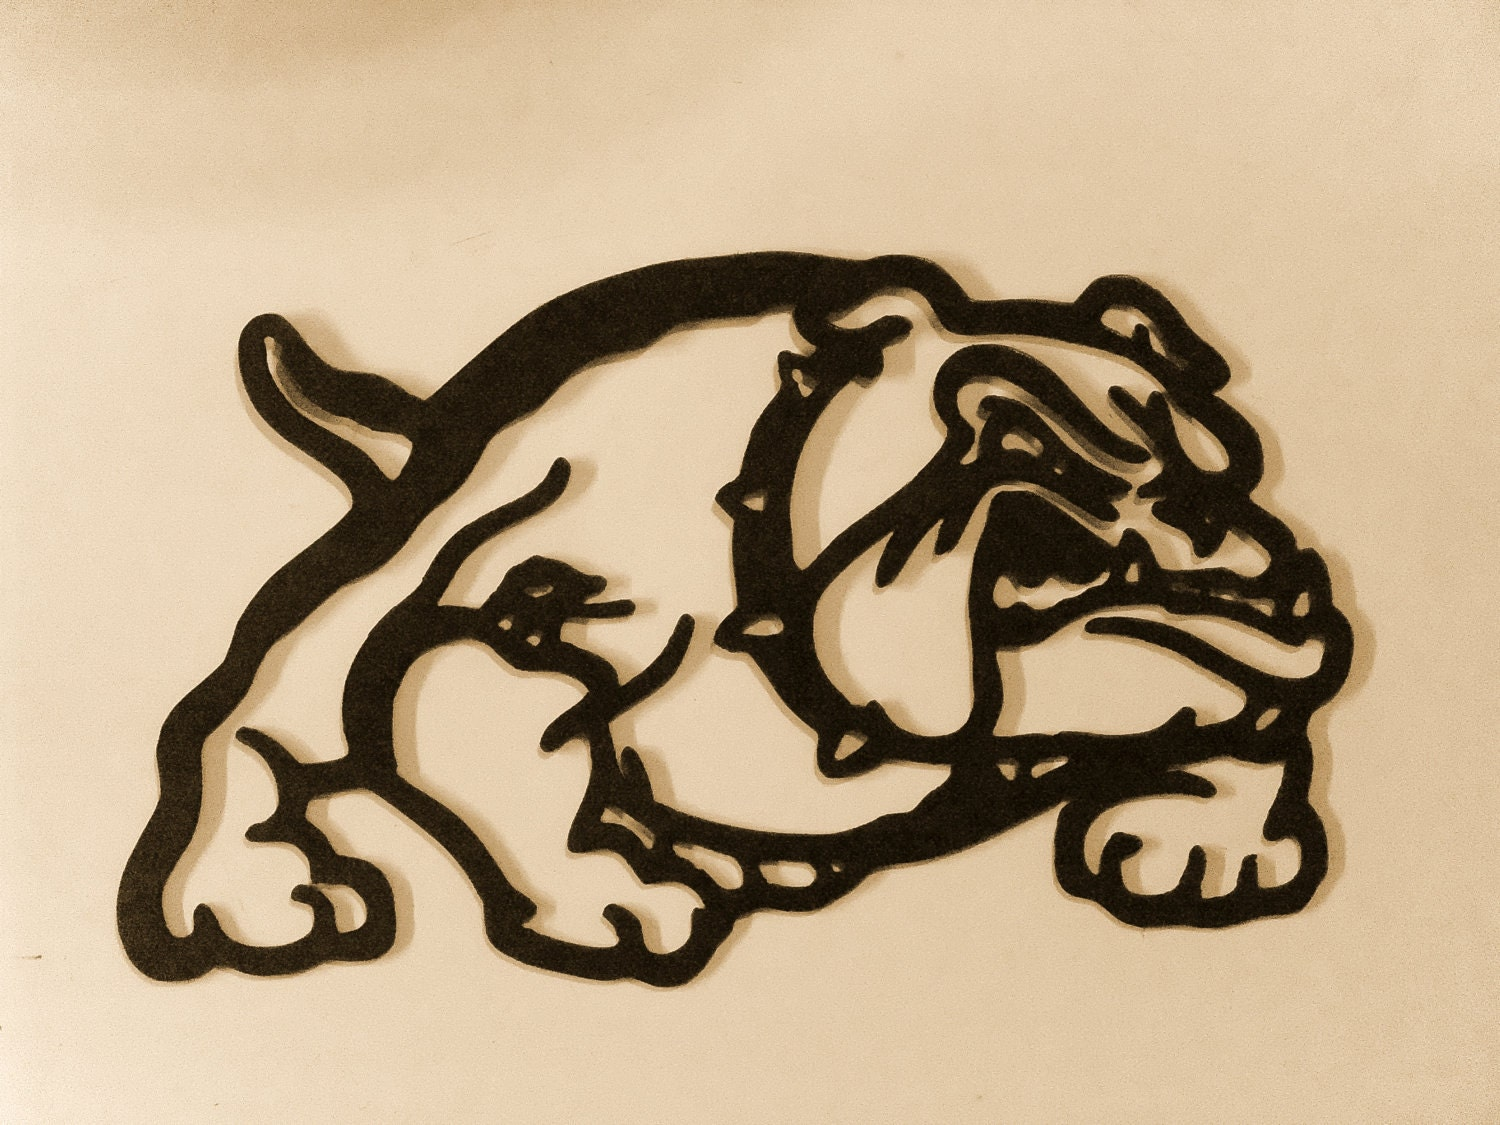 bull dog metal art wall decor by bkcreations1 on etsy